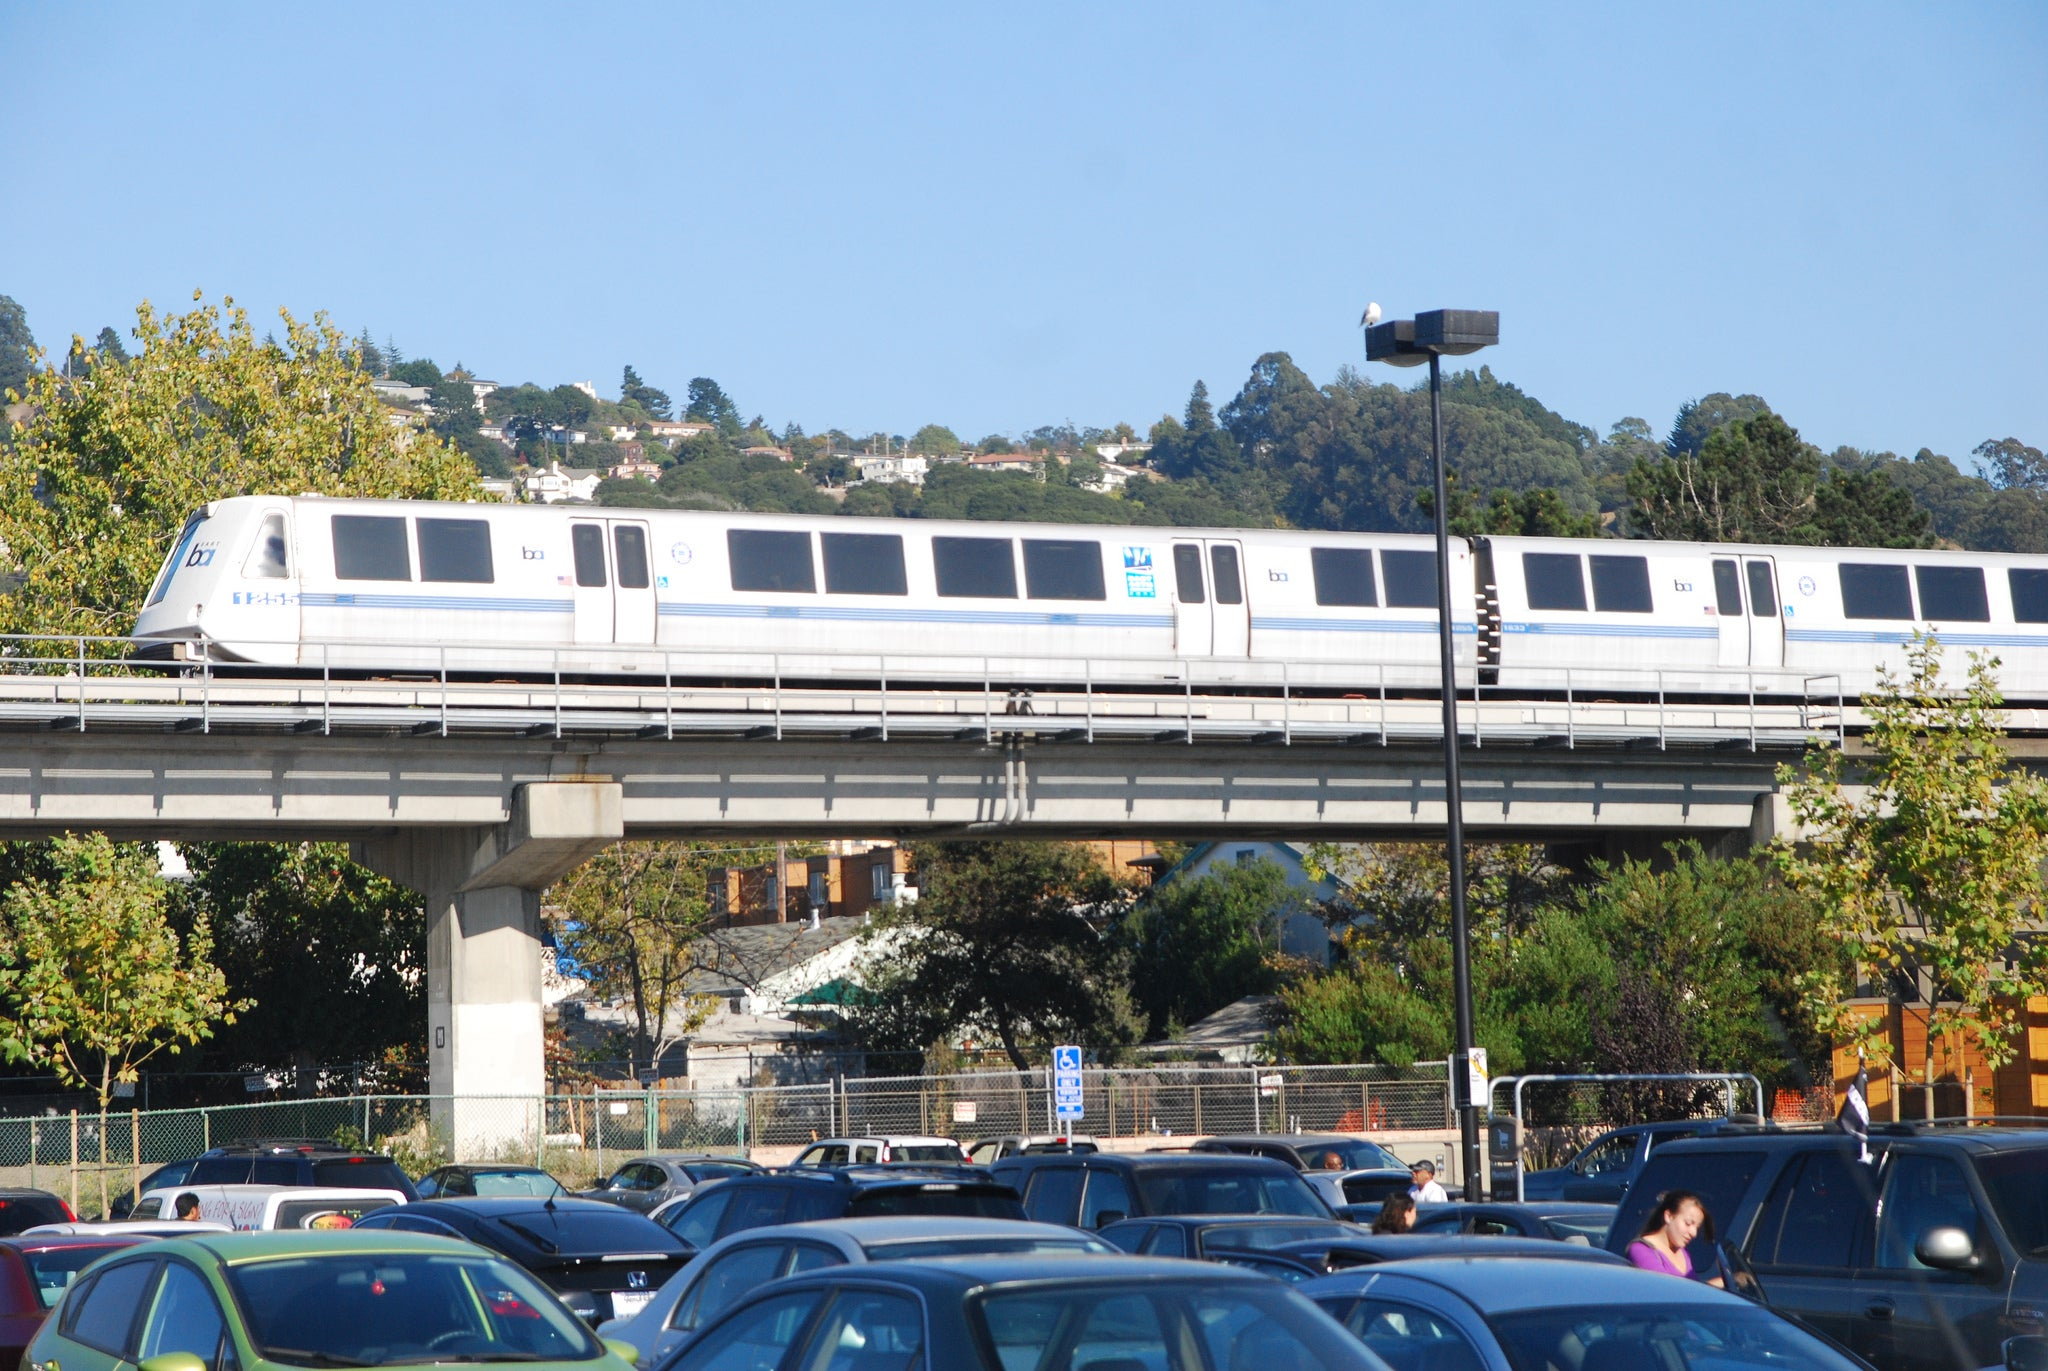 A BART train exits the El Cerrito del Norte station in the East Bay.